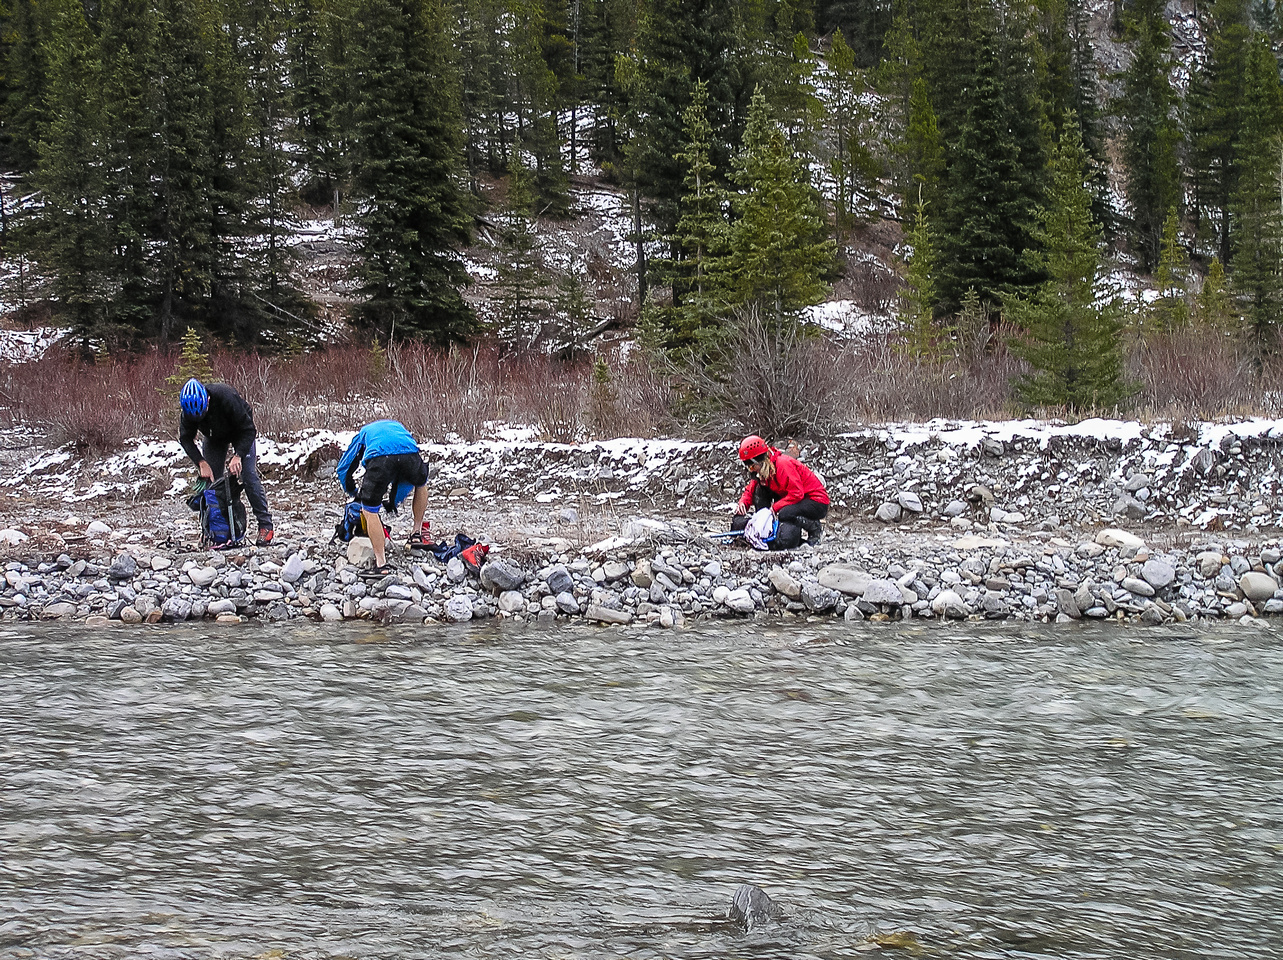 Crossing the Little Elbow River.